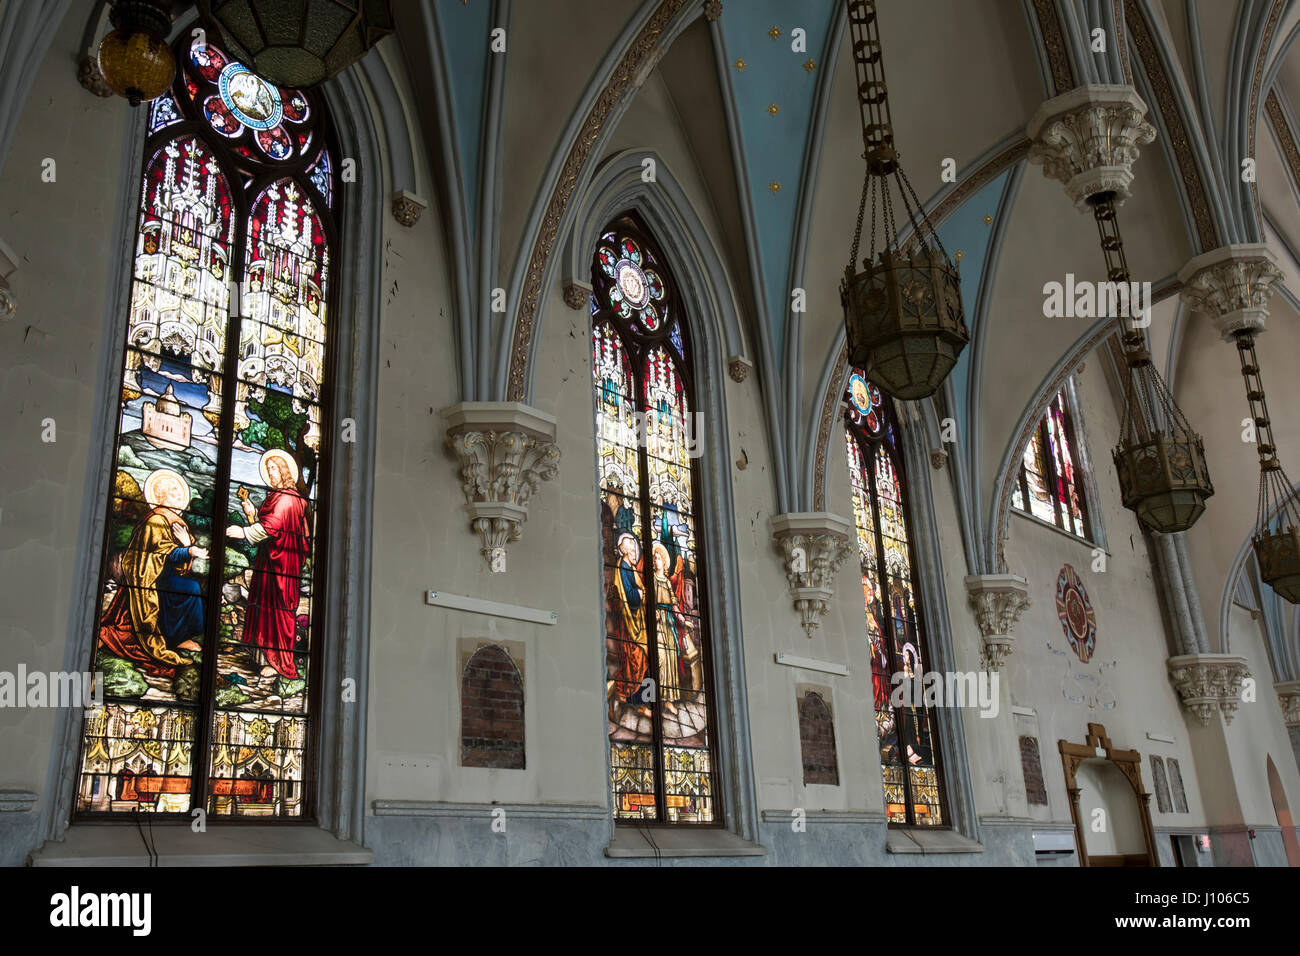 Gothic German Catholic Church Interior With Stained Glass Windows And Ornate Light Fixtures